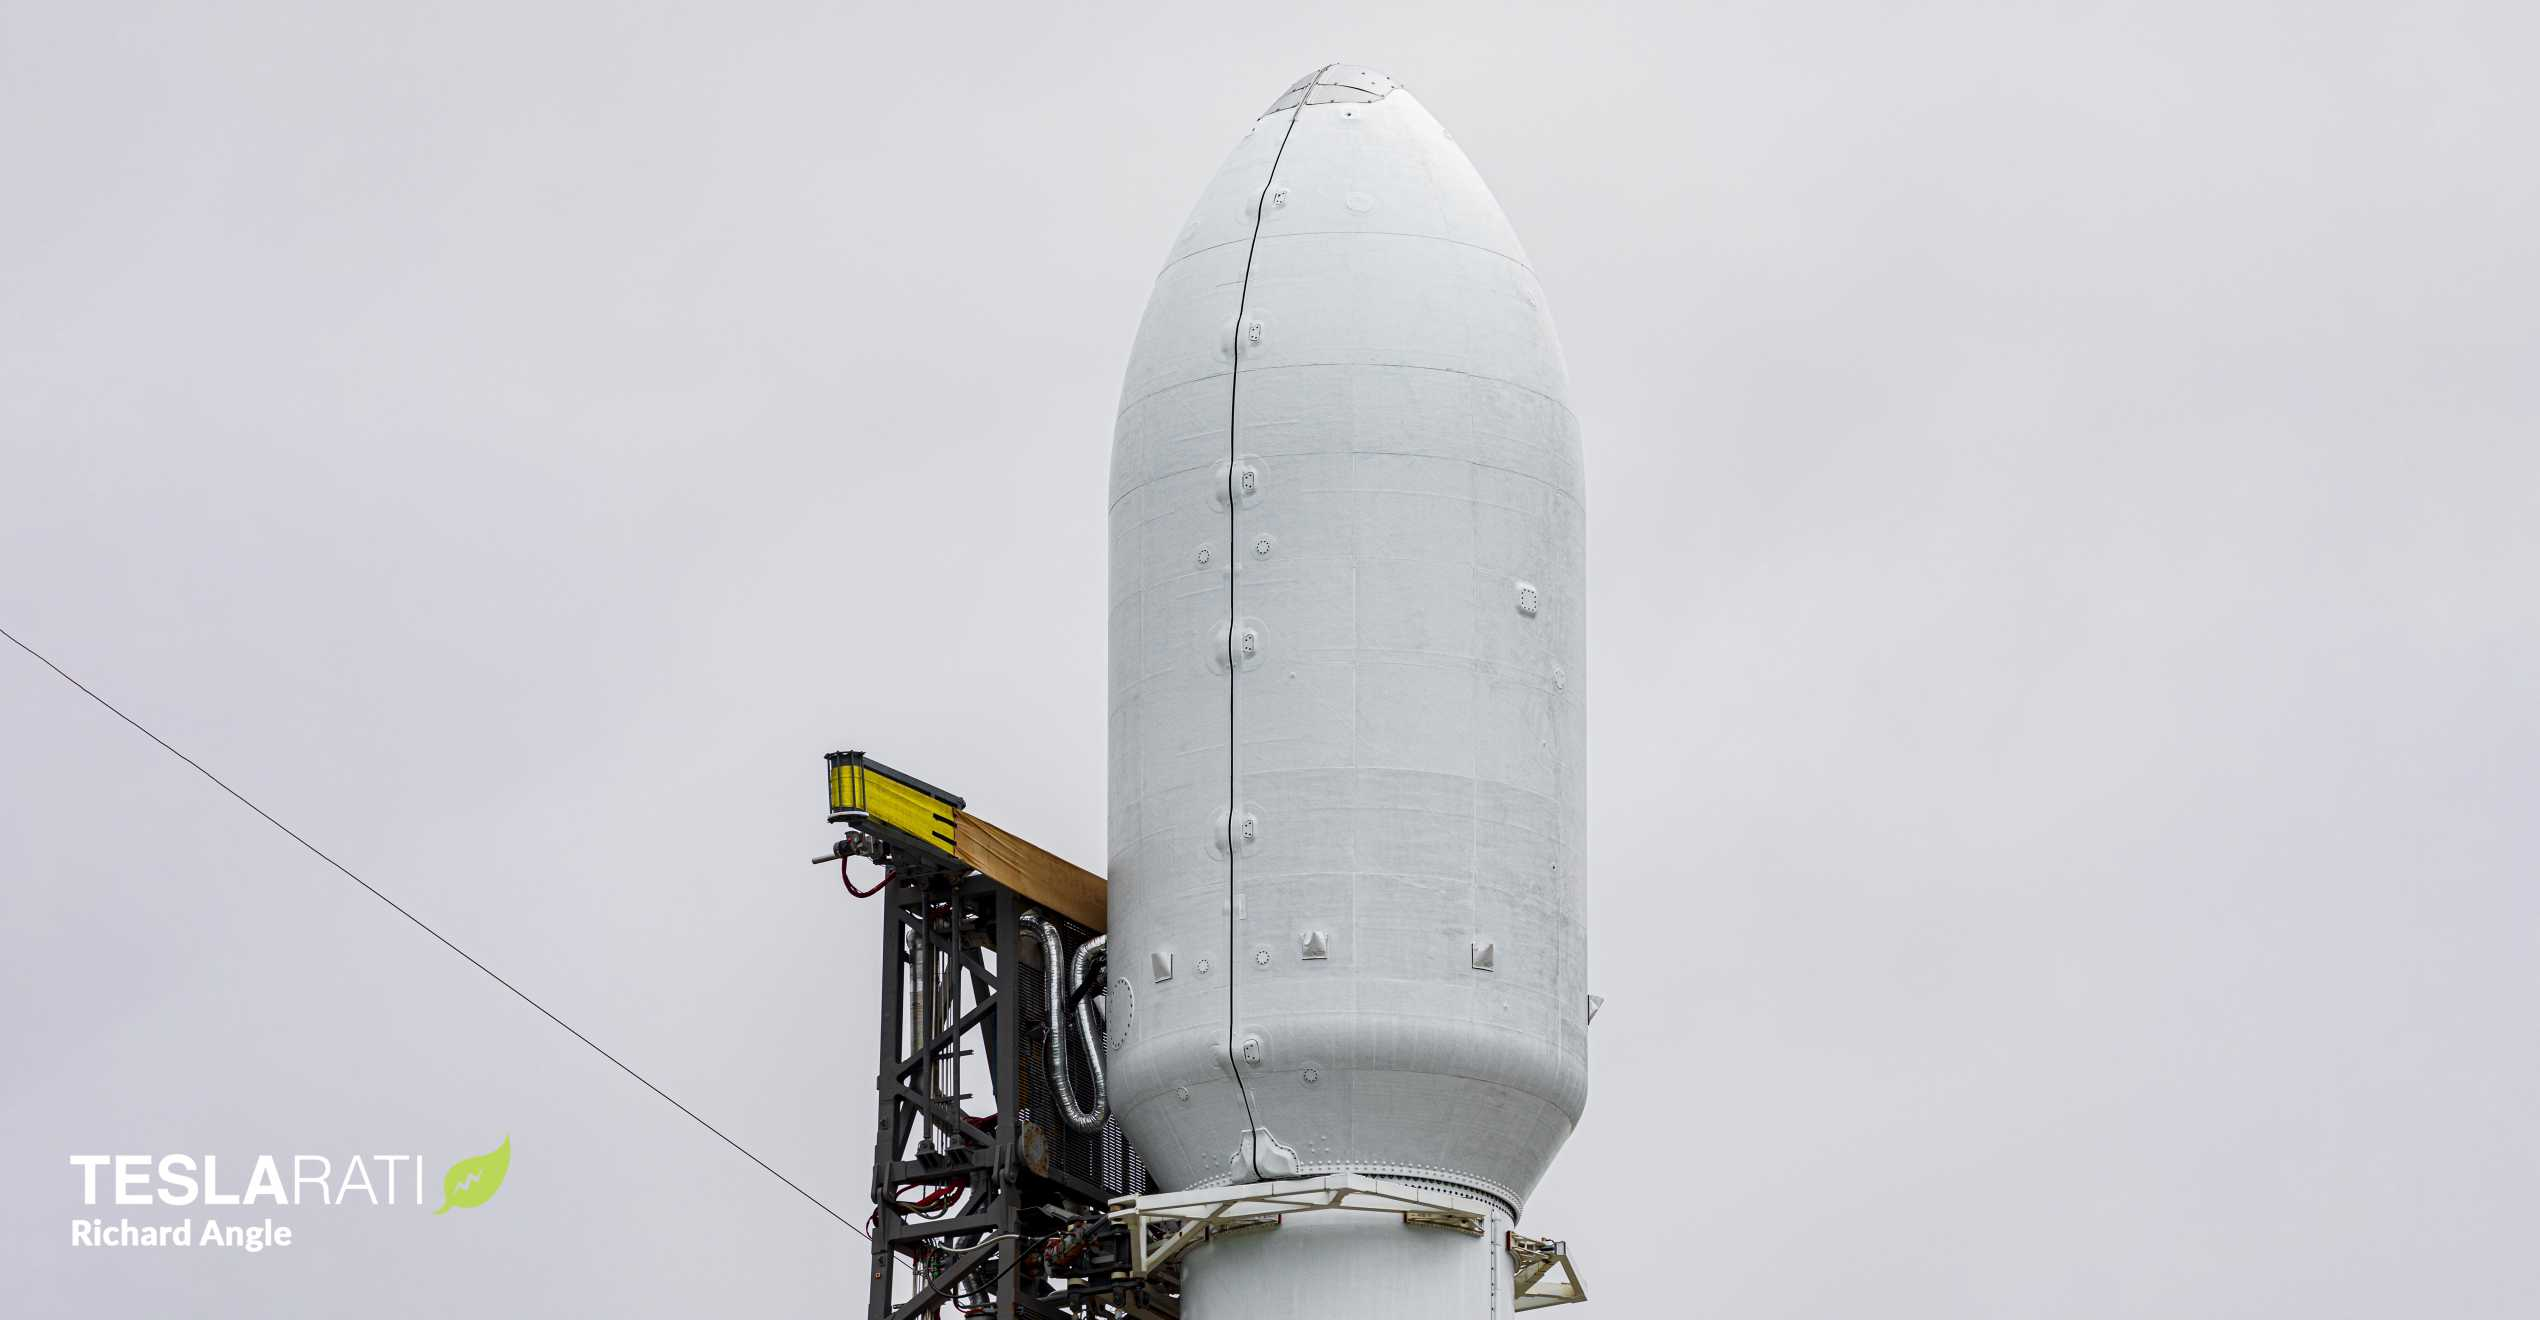 SpaceX rings in Falcon 9's 10th anniversary with a rocket reusability first